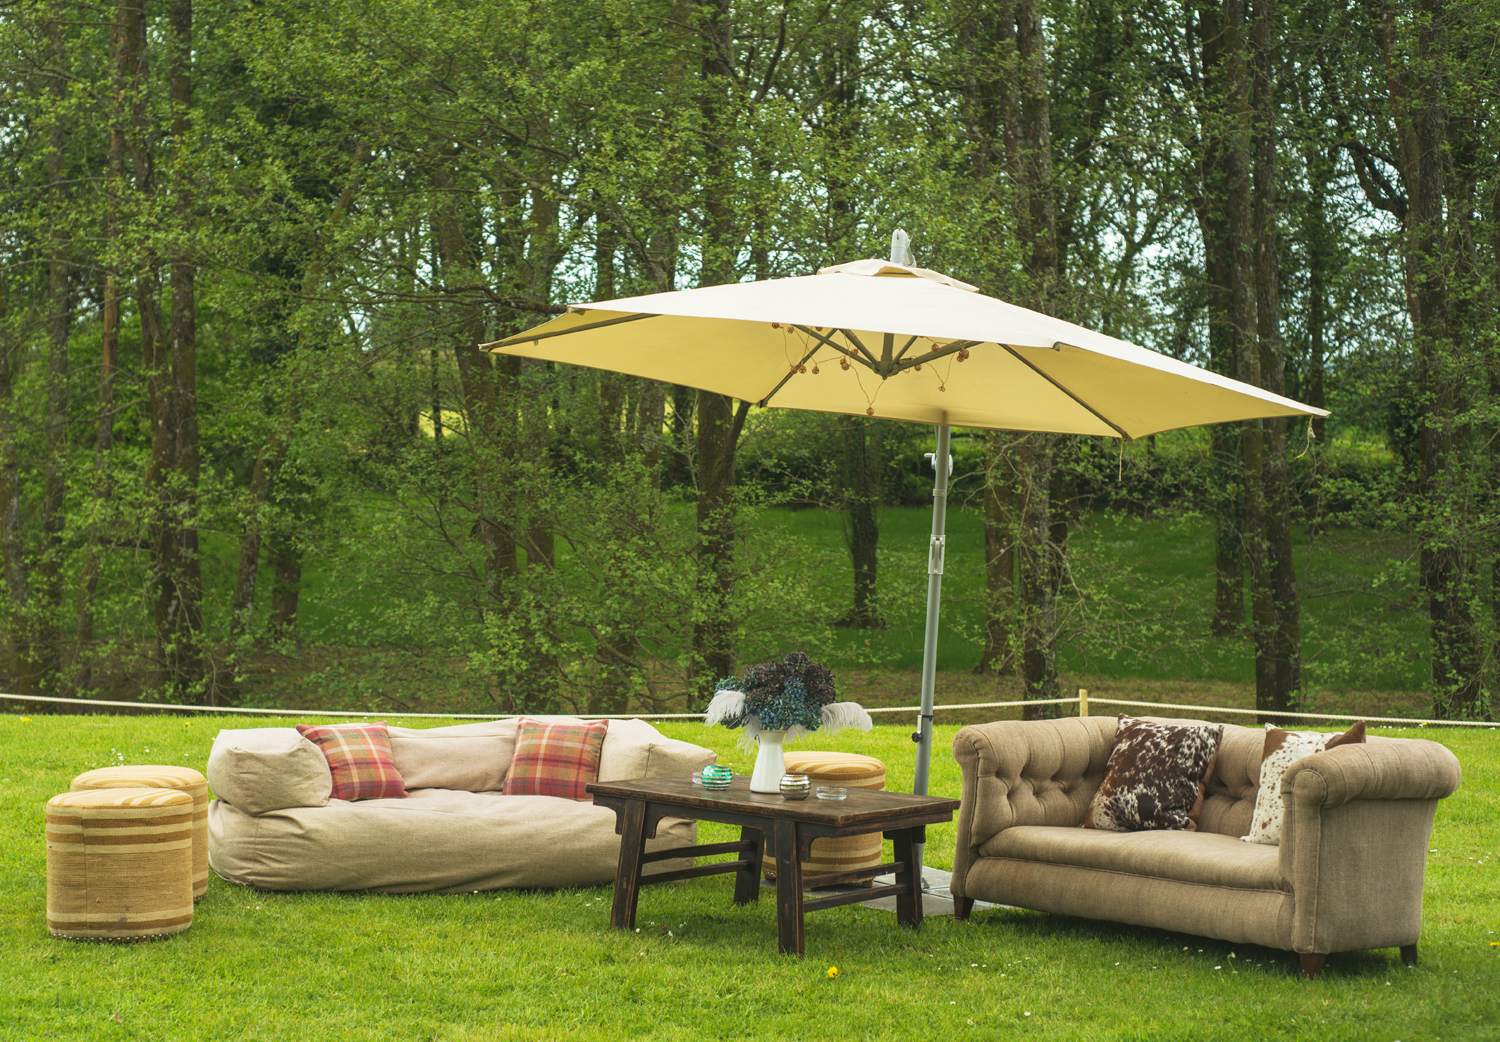 couches-outside-loyton-lodge-wedding.jpg